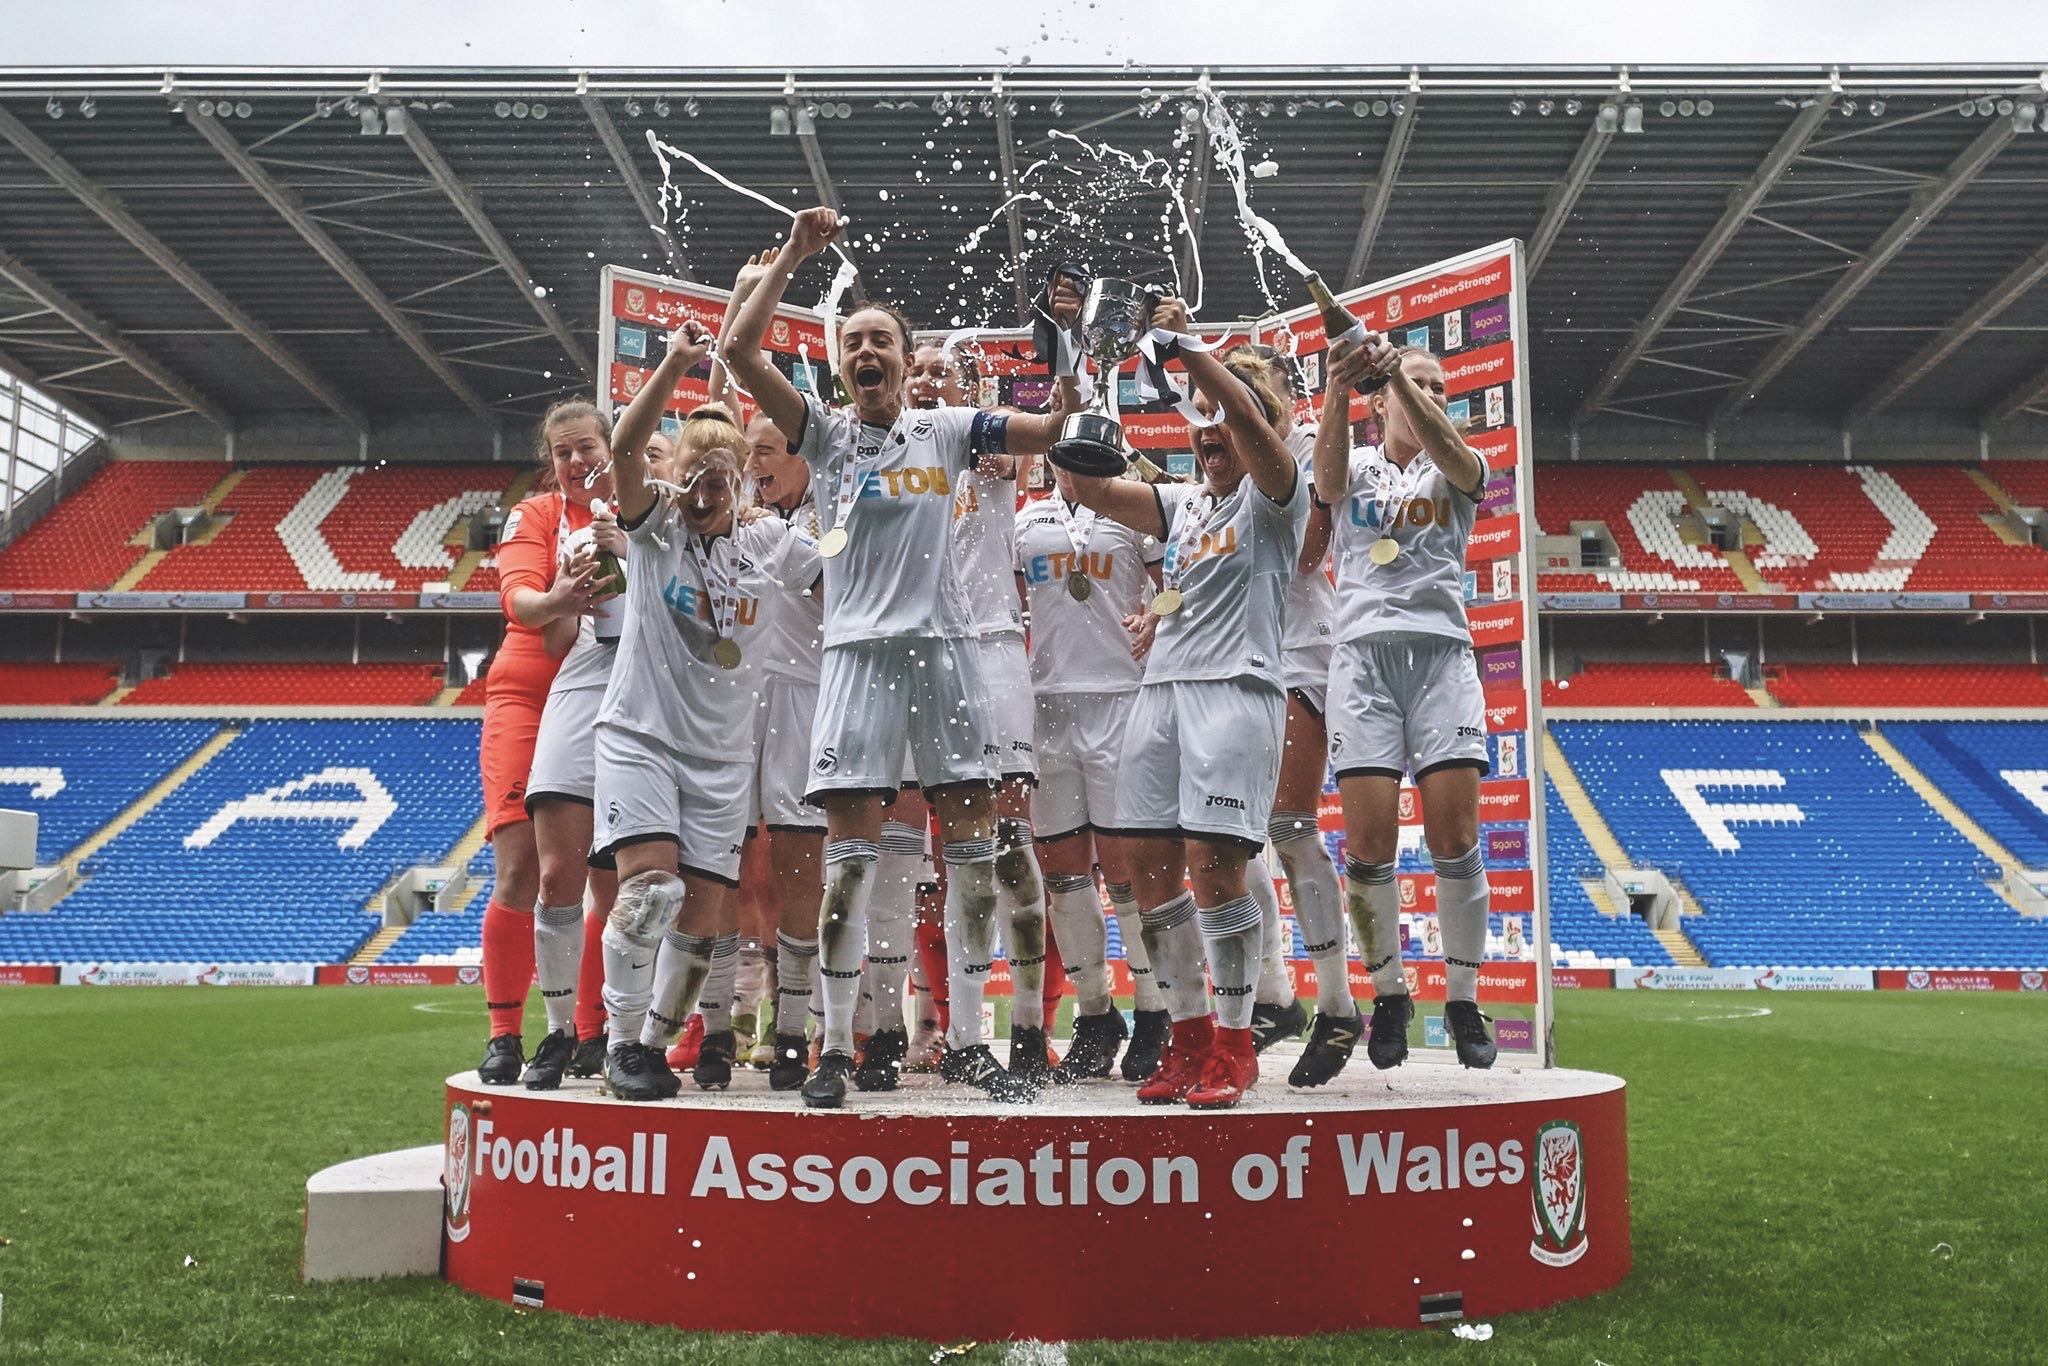 Swansea City celebrating a cup win